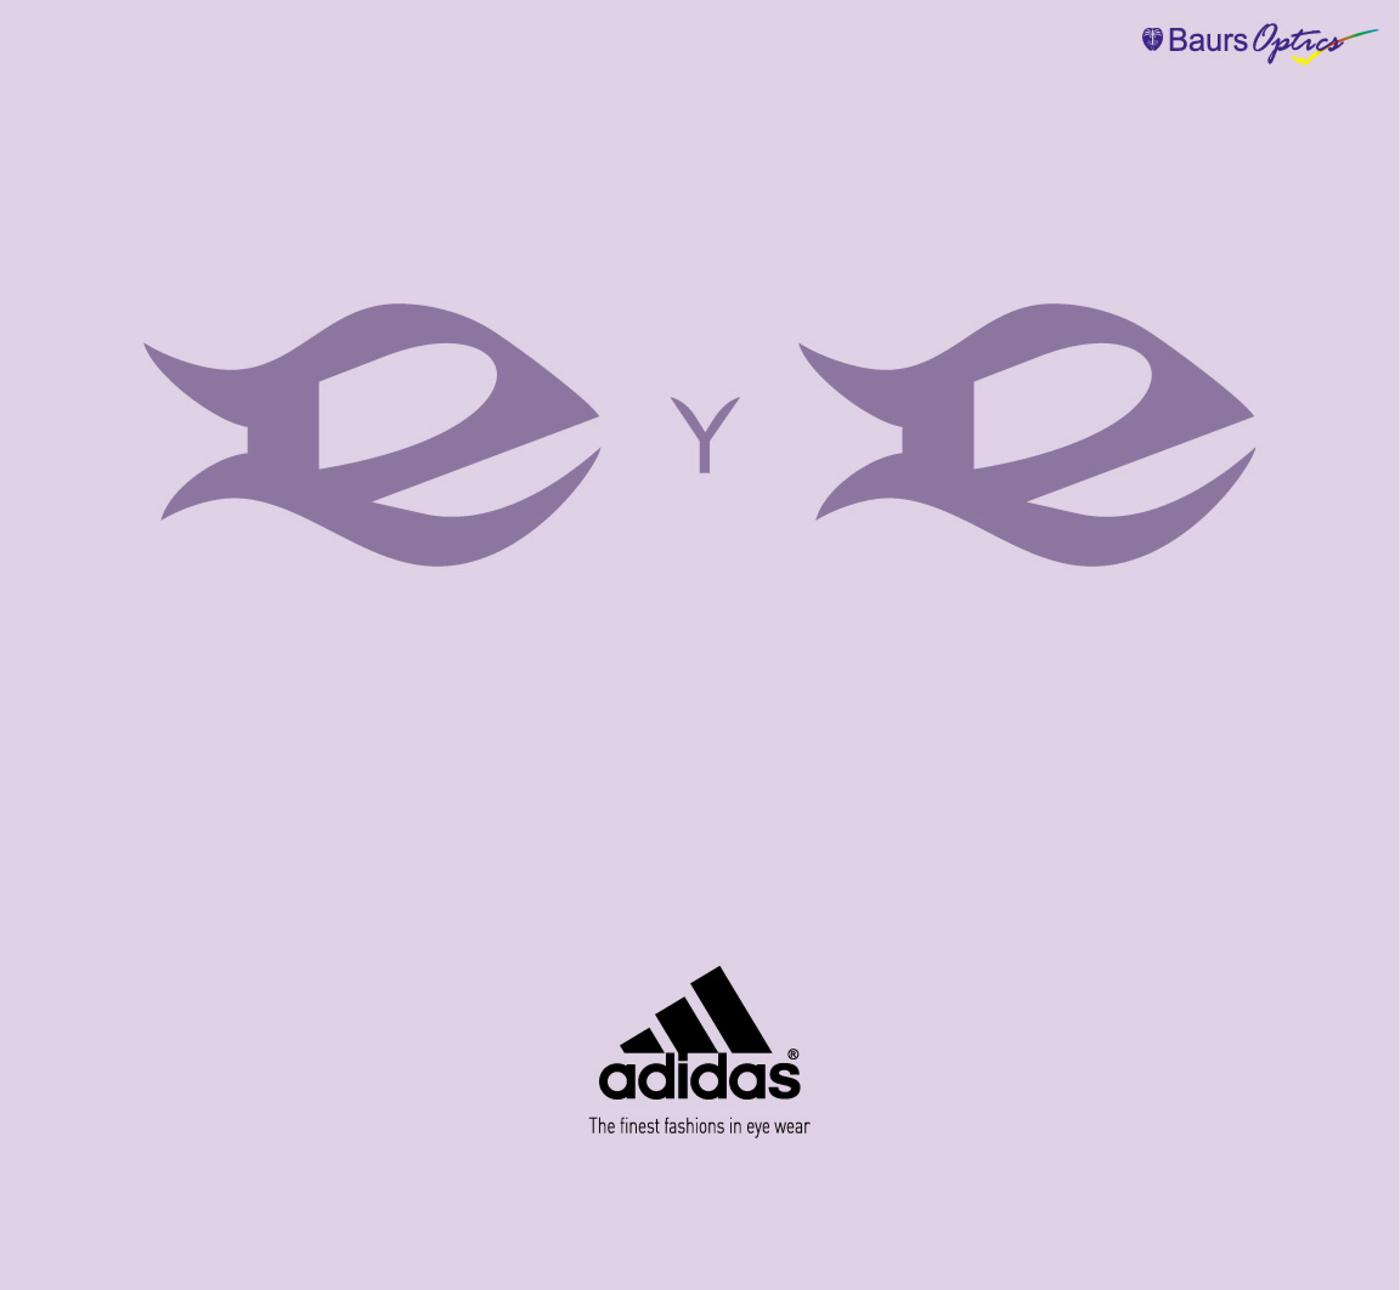 Adidas Print Ad -  The finest fashions in eye wear, 1